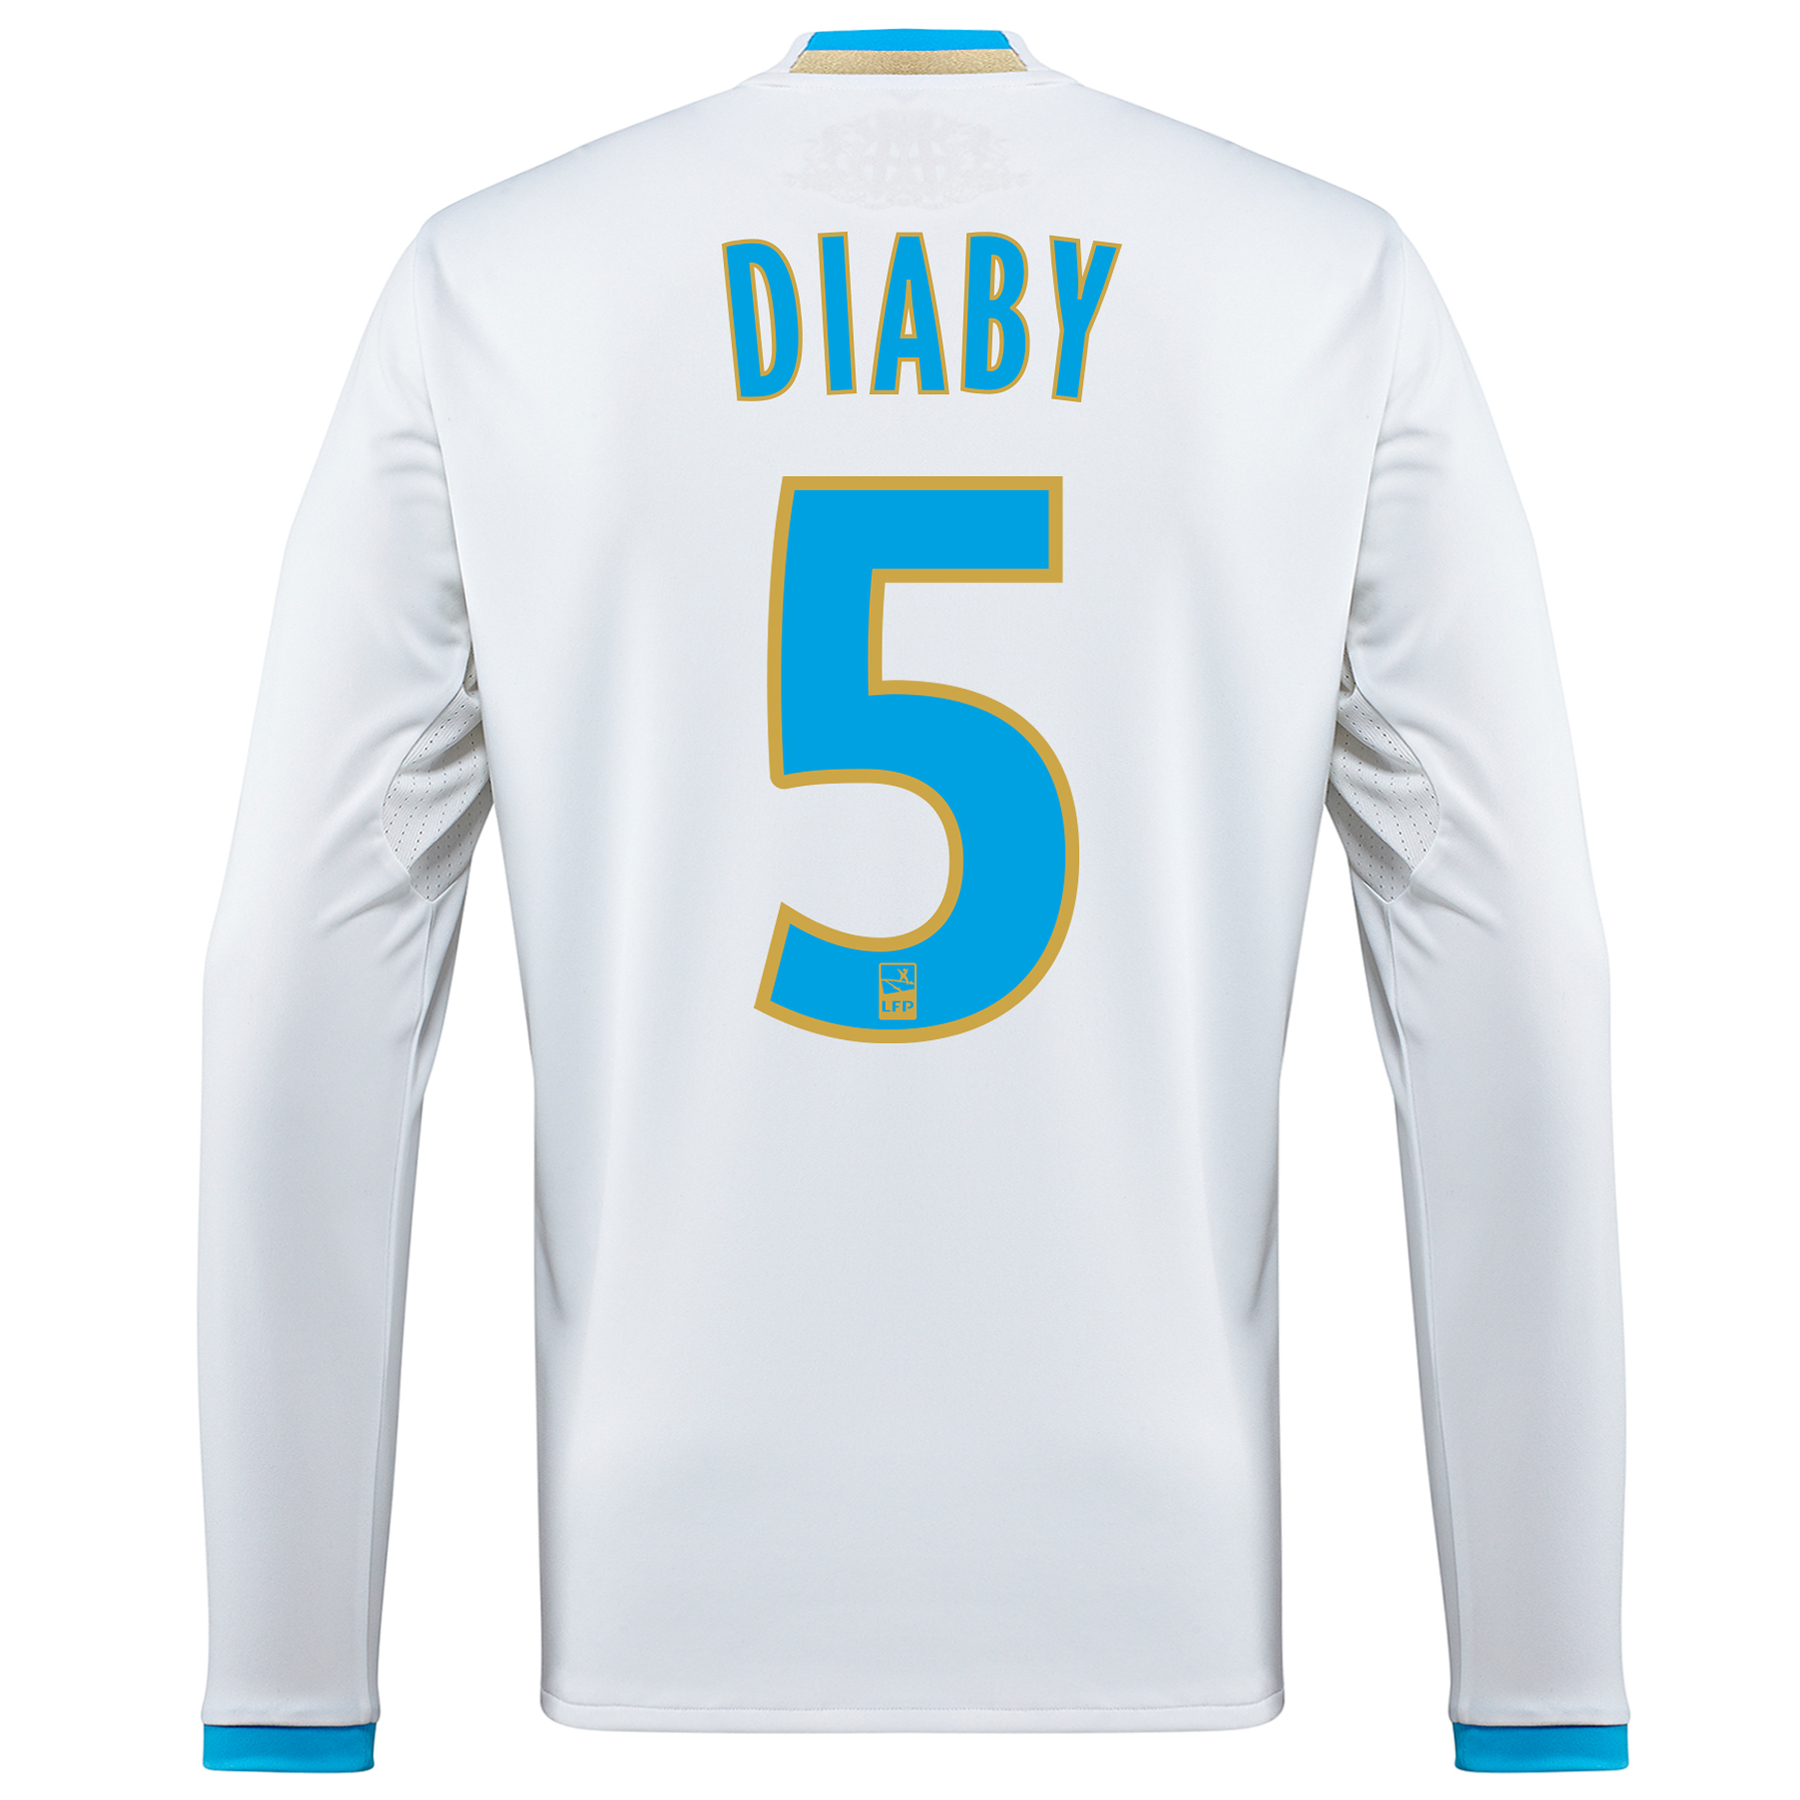 Olympique de Marseille Home Shirt 2016/17 - Long Sleeved with Diaby 5